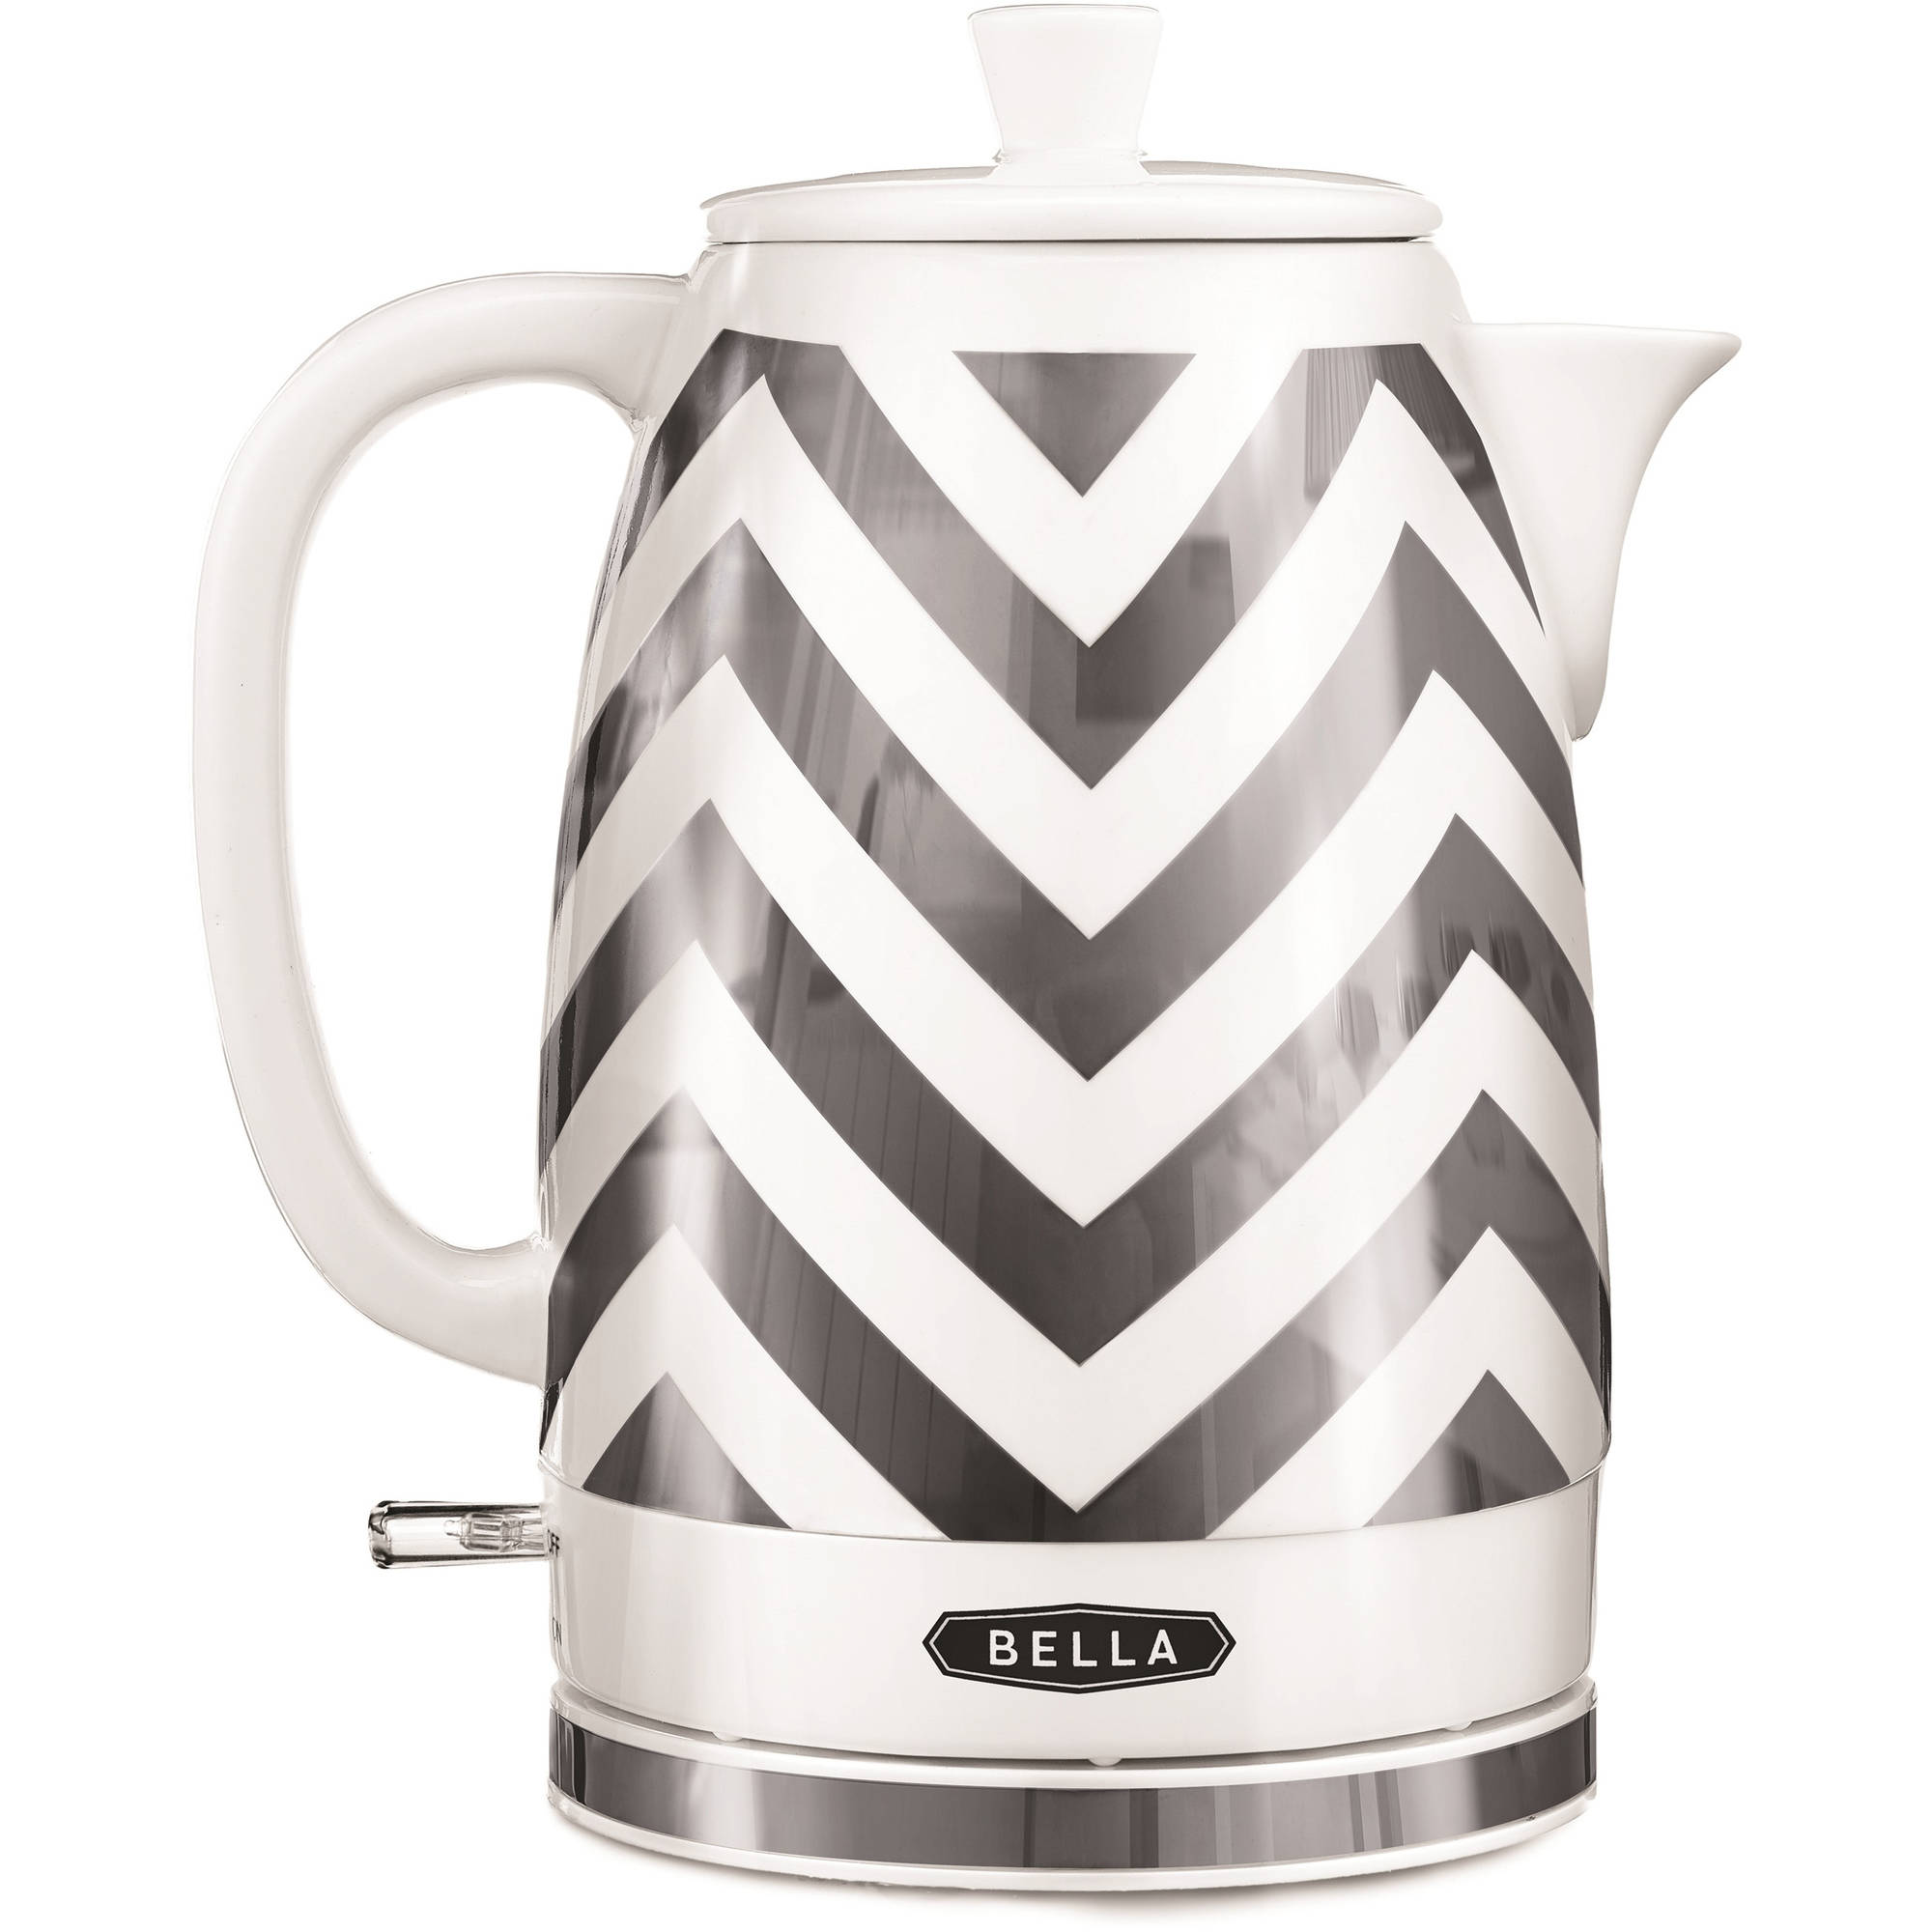 Bella 1.8-Liter Ceramic Kettle, Chevron Pattern by Sensio